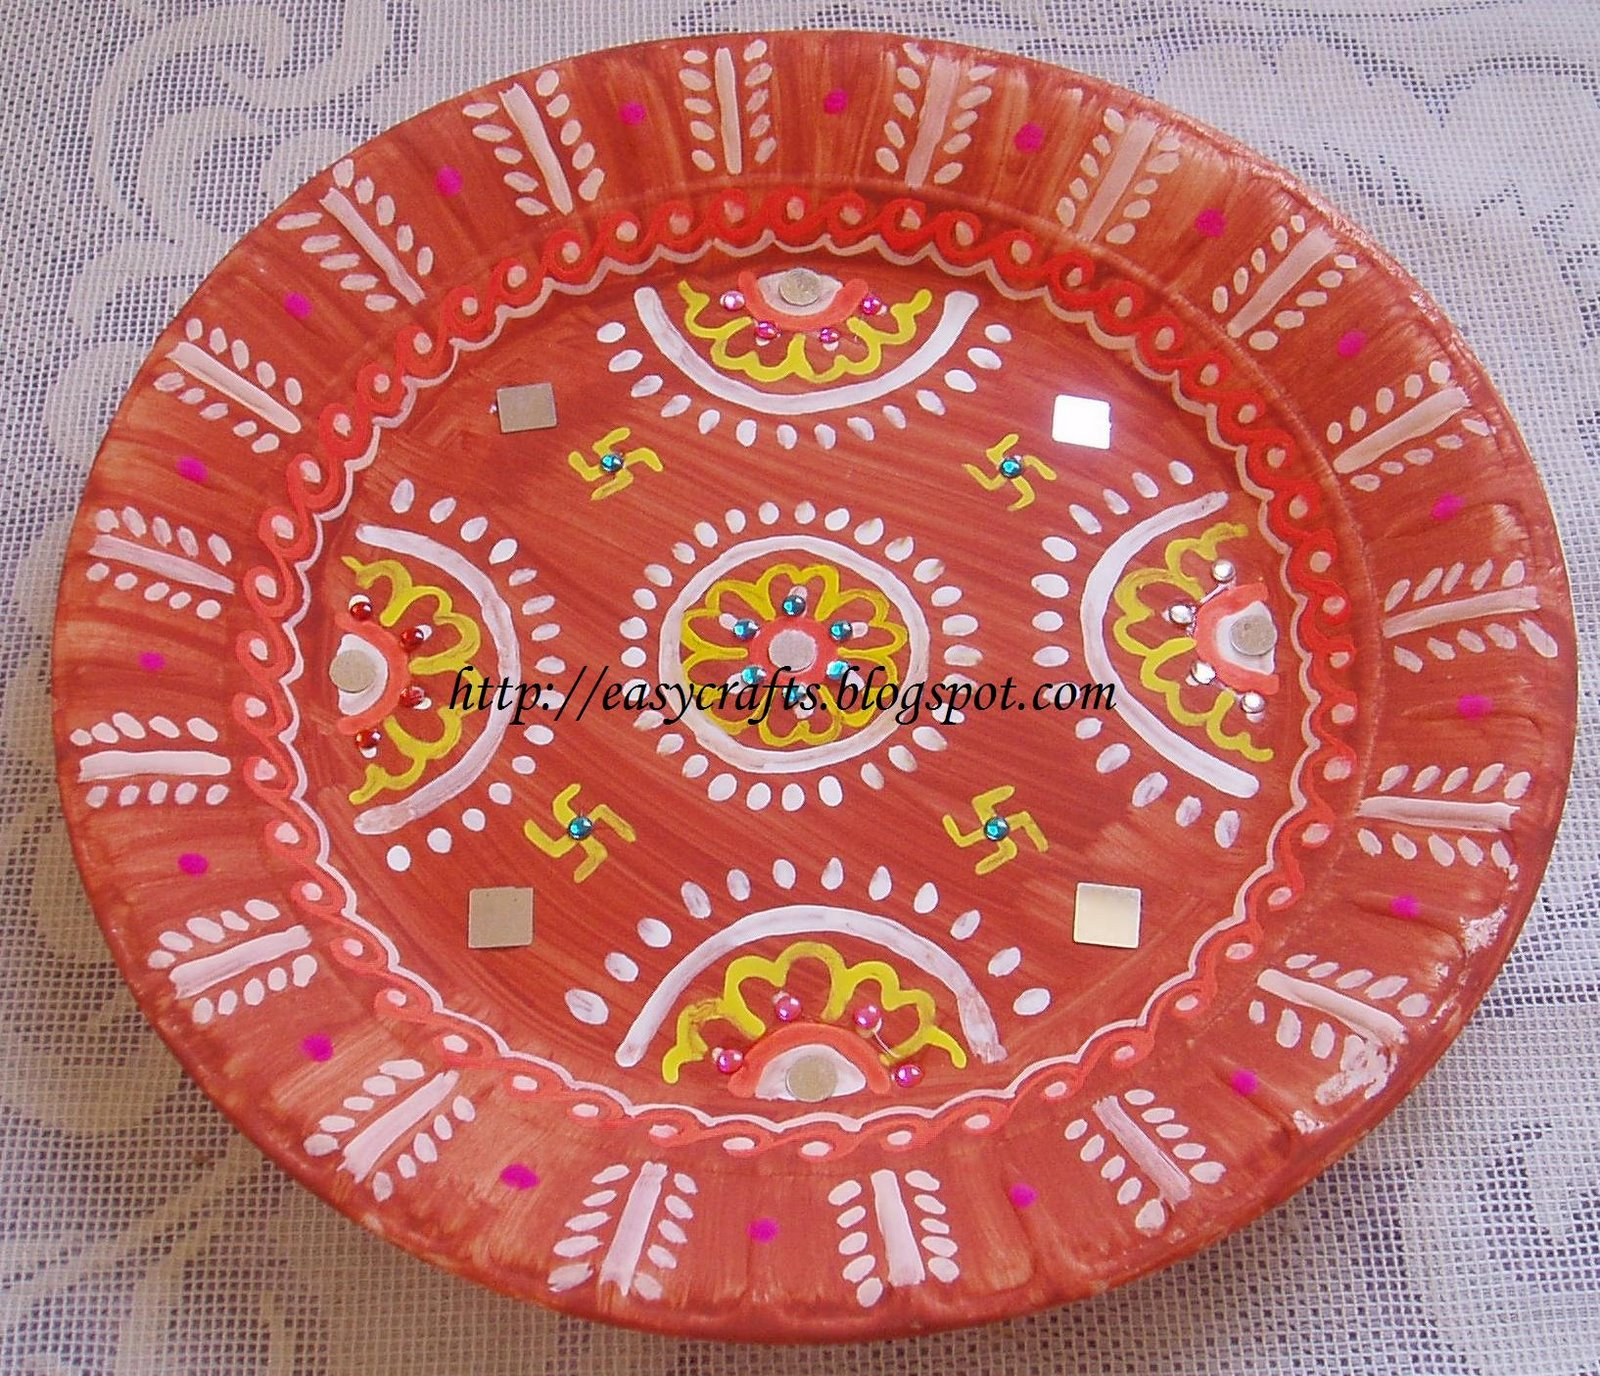 Decorative plate/ Wall hanging  sc 1 st  Easy Crafts - Blogger & Easy Crafts - Explore your creativity: Decorative plate/ Wall hanging